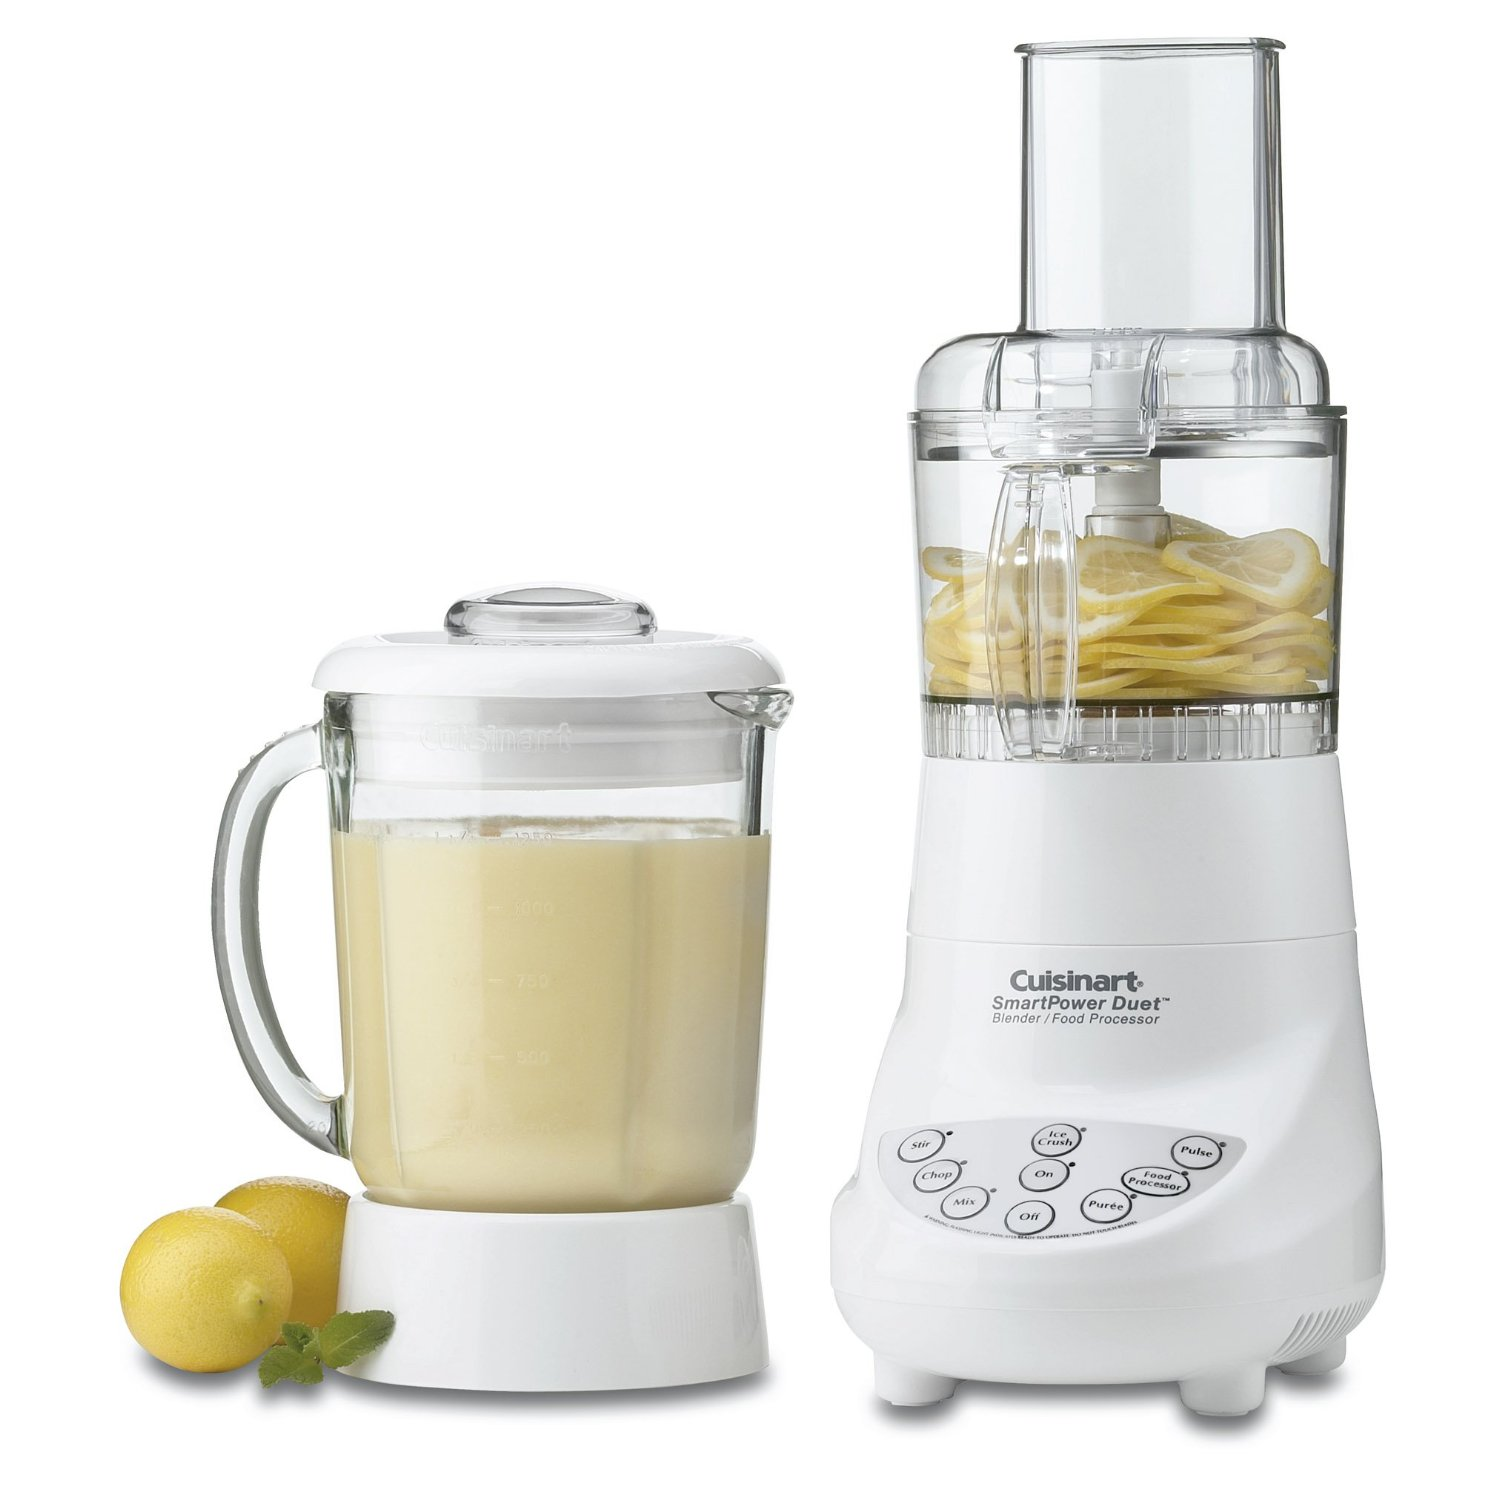 Smartpower Duet Blender Food Processor Cuisinart Recall